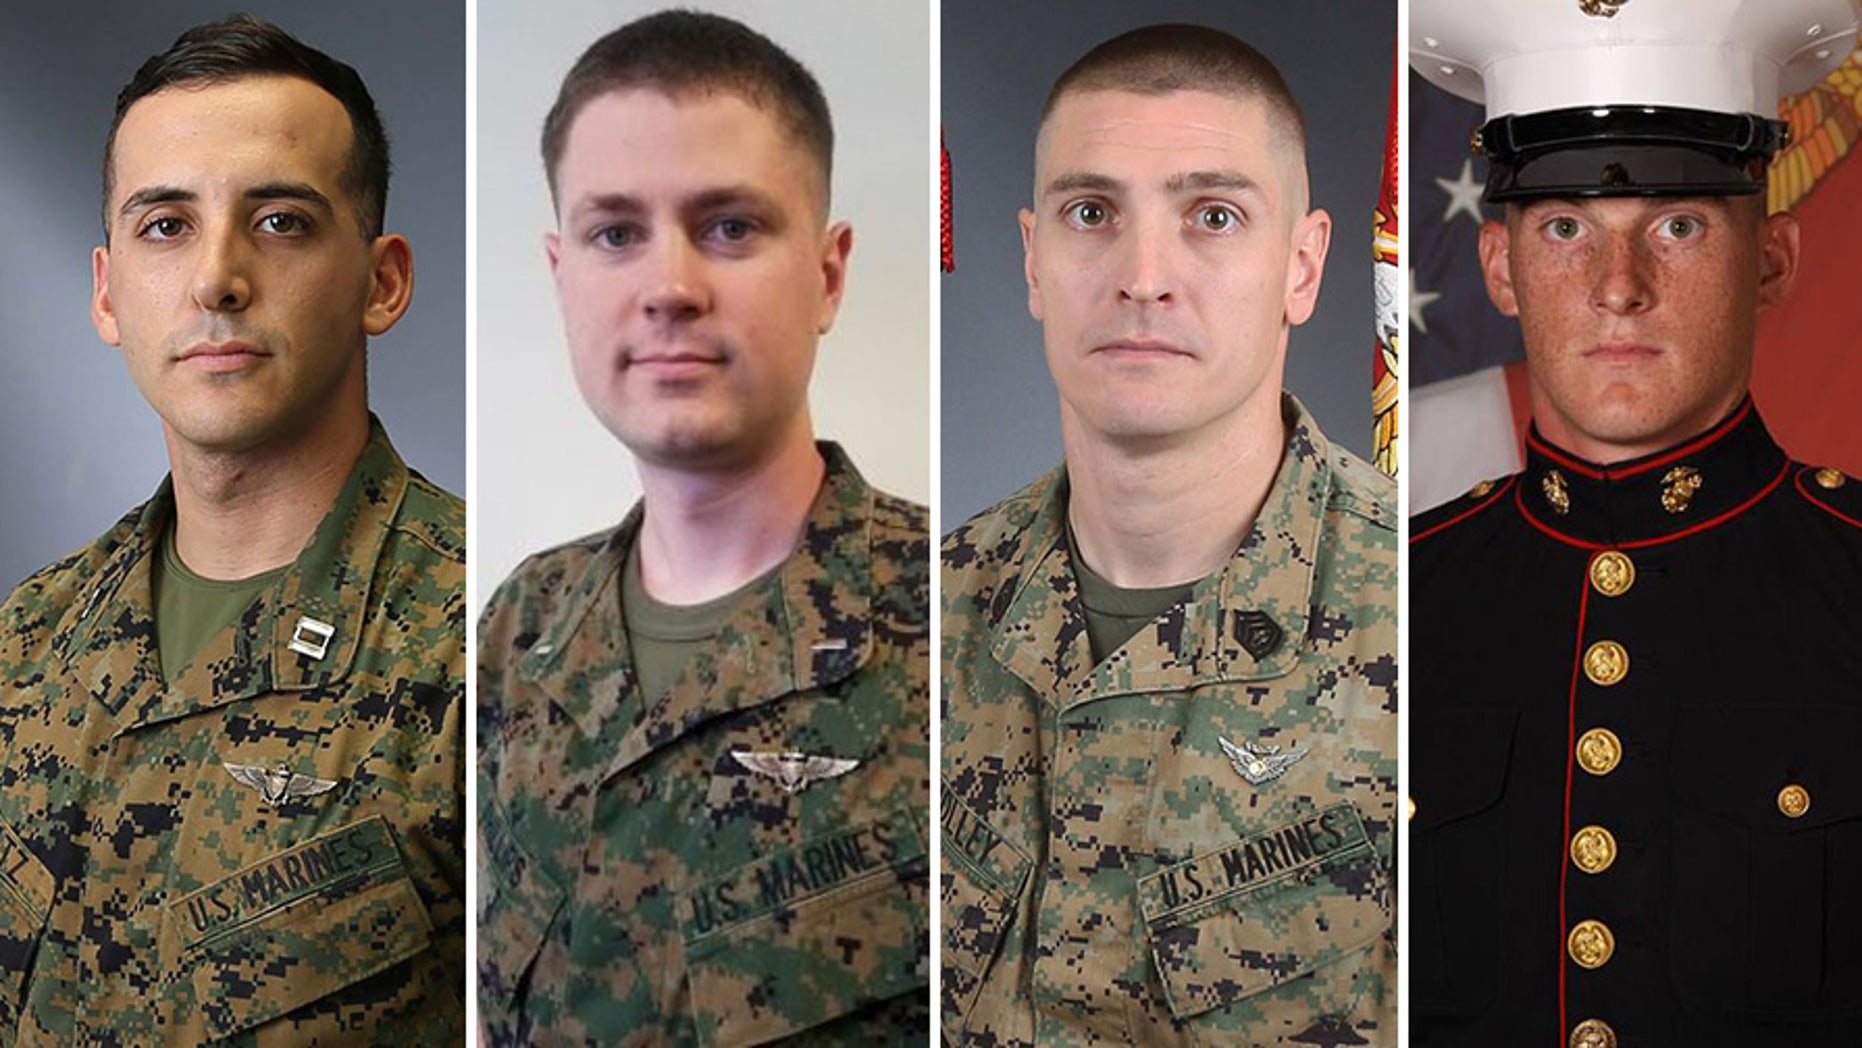 The deceased Marines, from left to right, were Capt. Samuel A. Schultz, First Lt. Samuel D. Phillips, Gunnery Sgt. Derik R. Holley and Lance Cpl. Taylor J. Conrad.